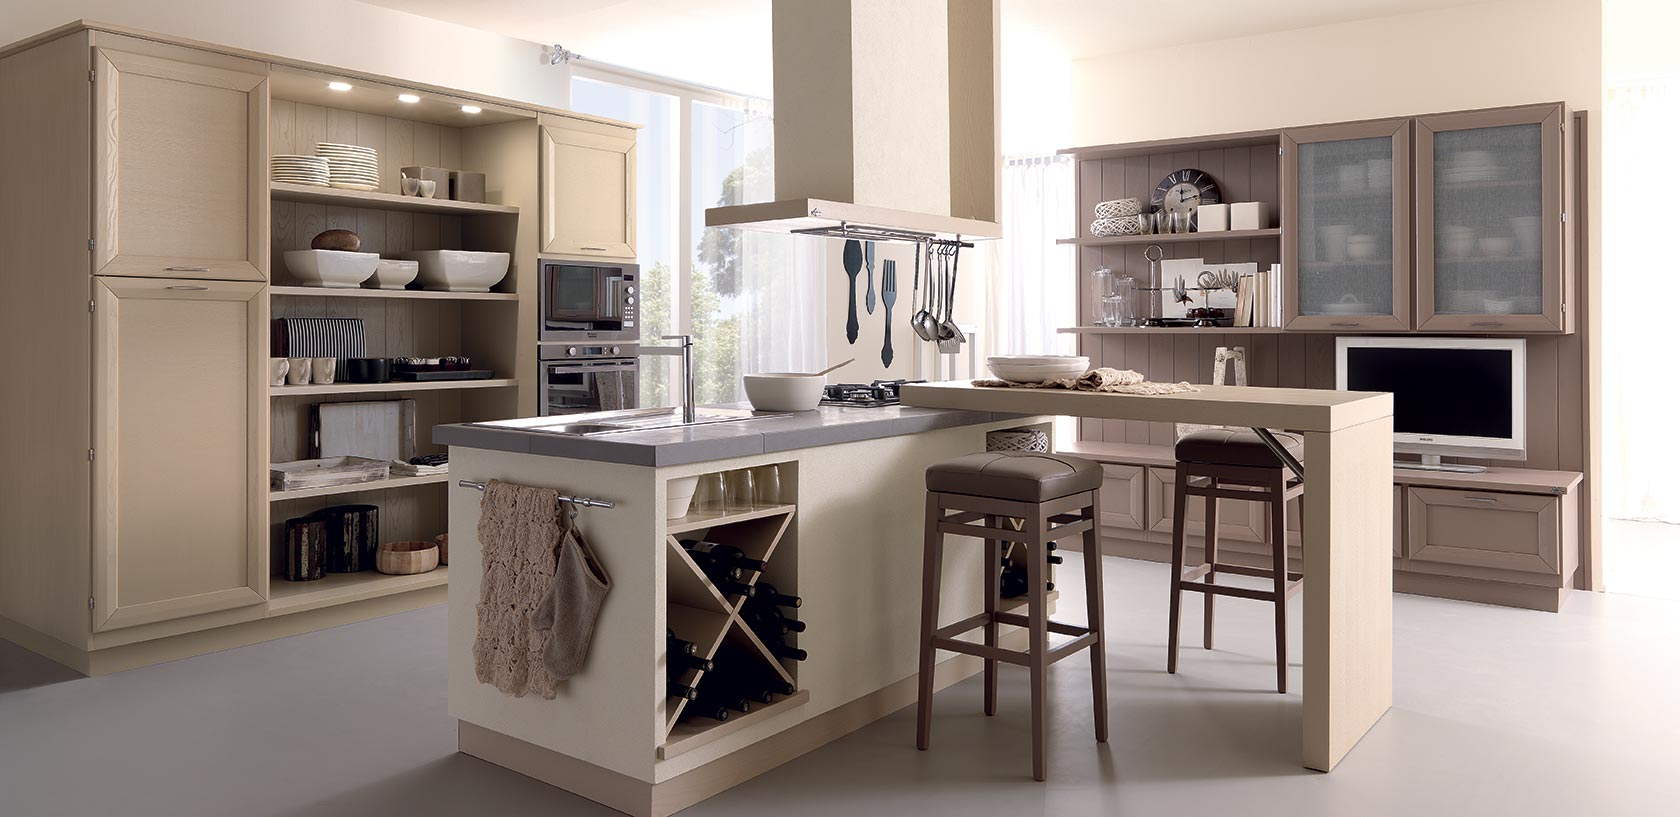 https://www.zappalorto.it/cucine/cucine_in_legno_5.jpg